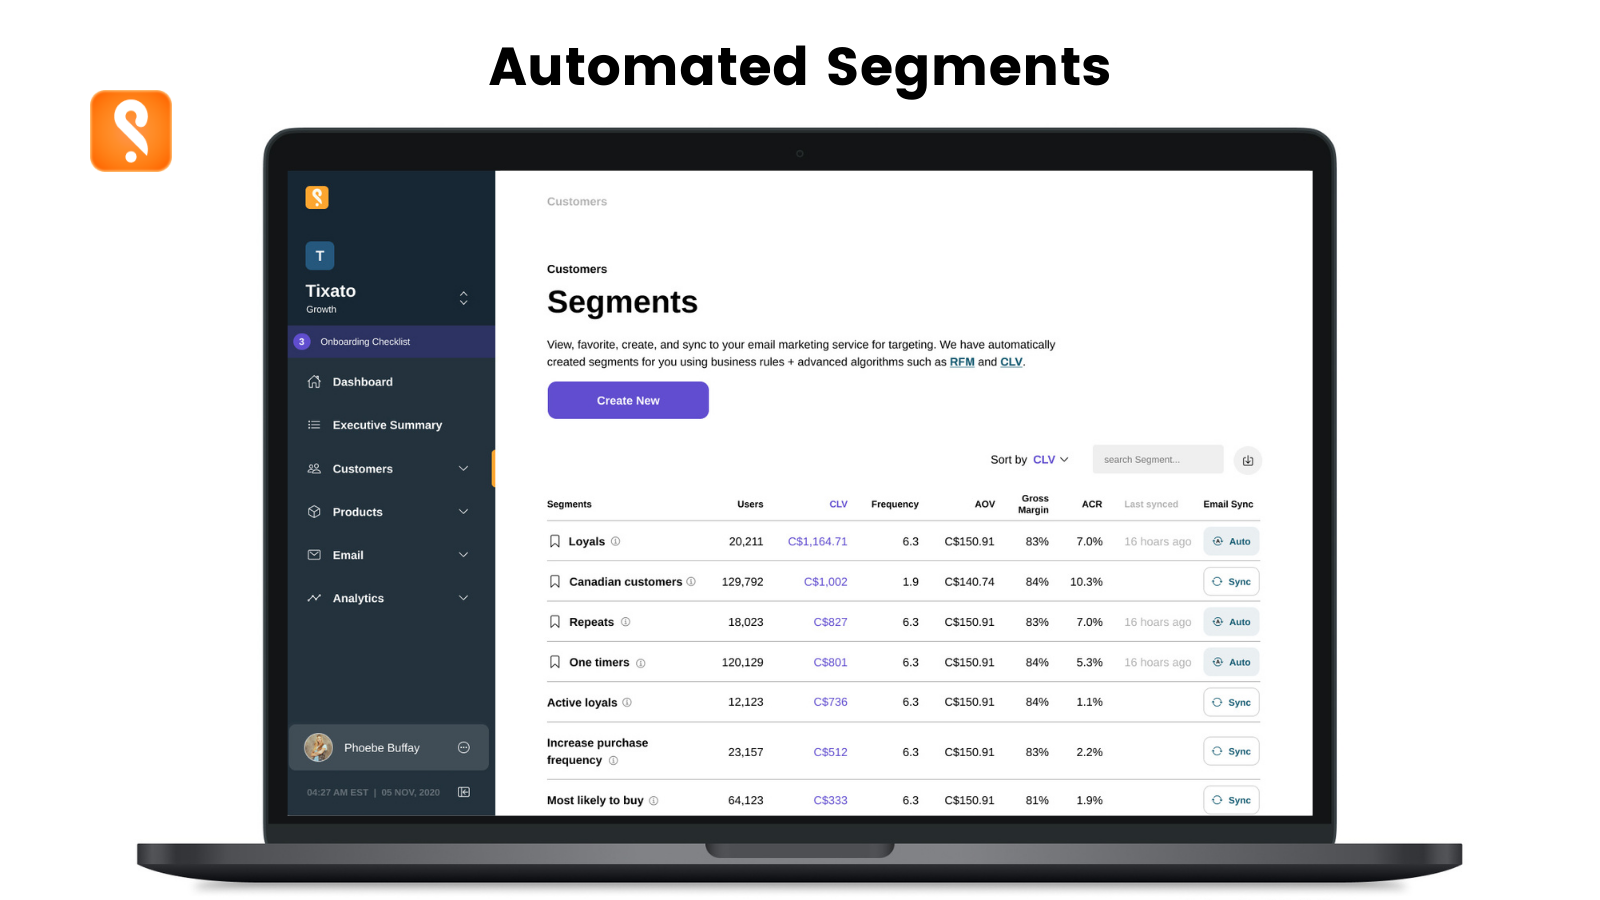 Access 35+ customer segments from our automated logic like RFM